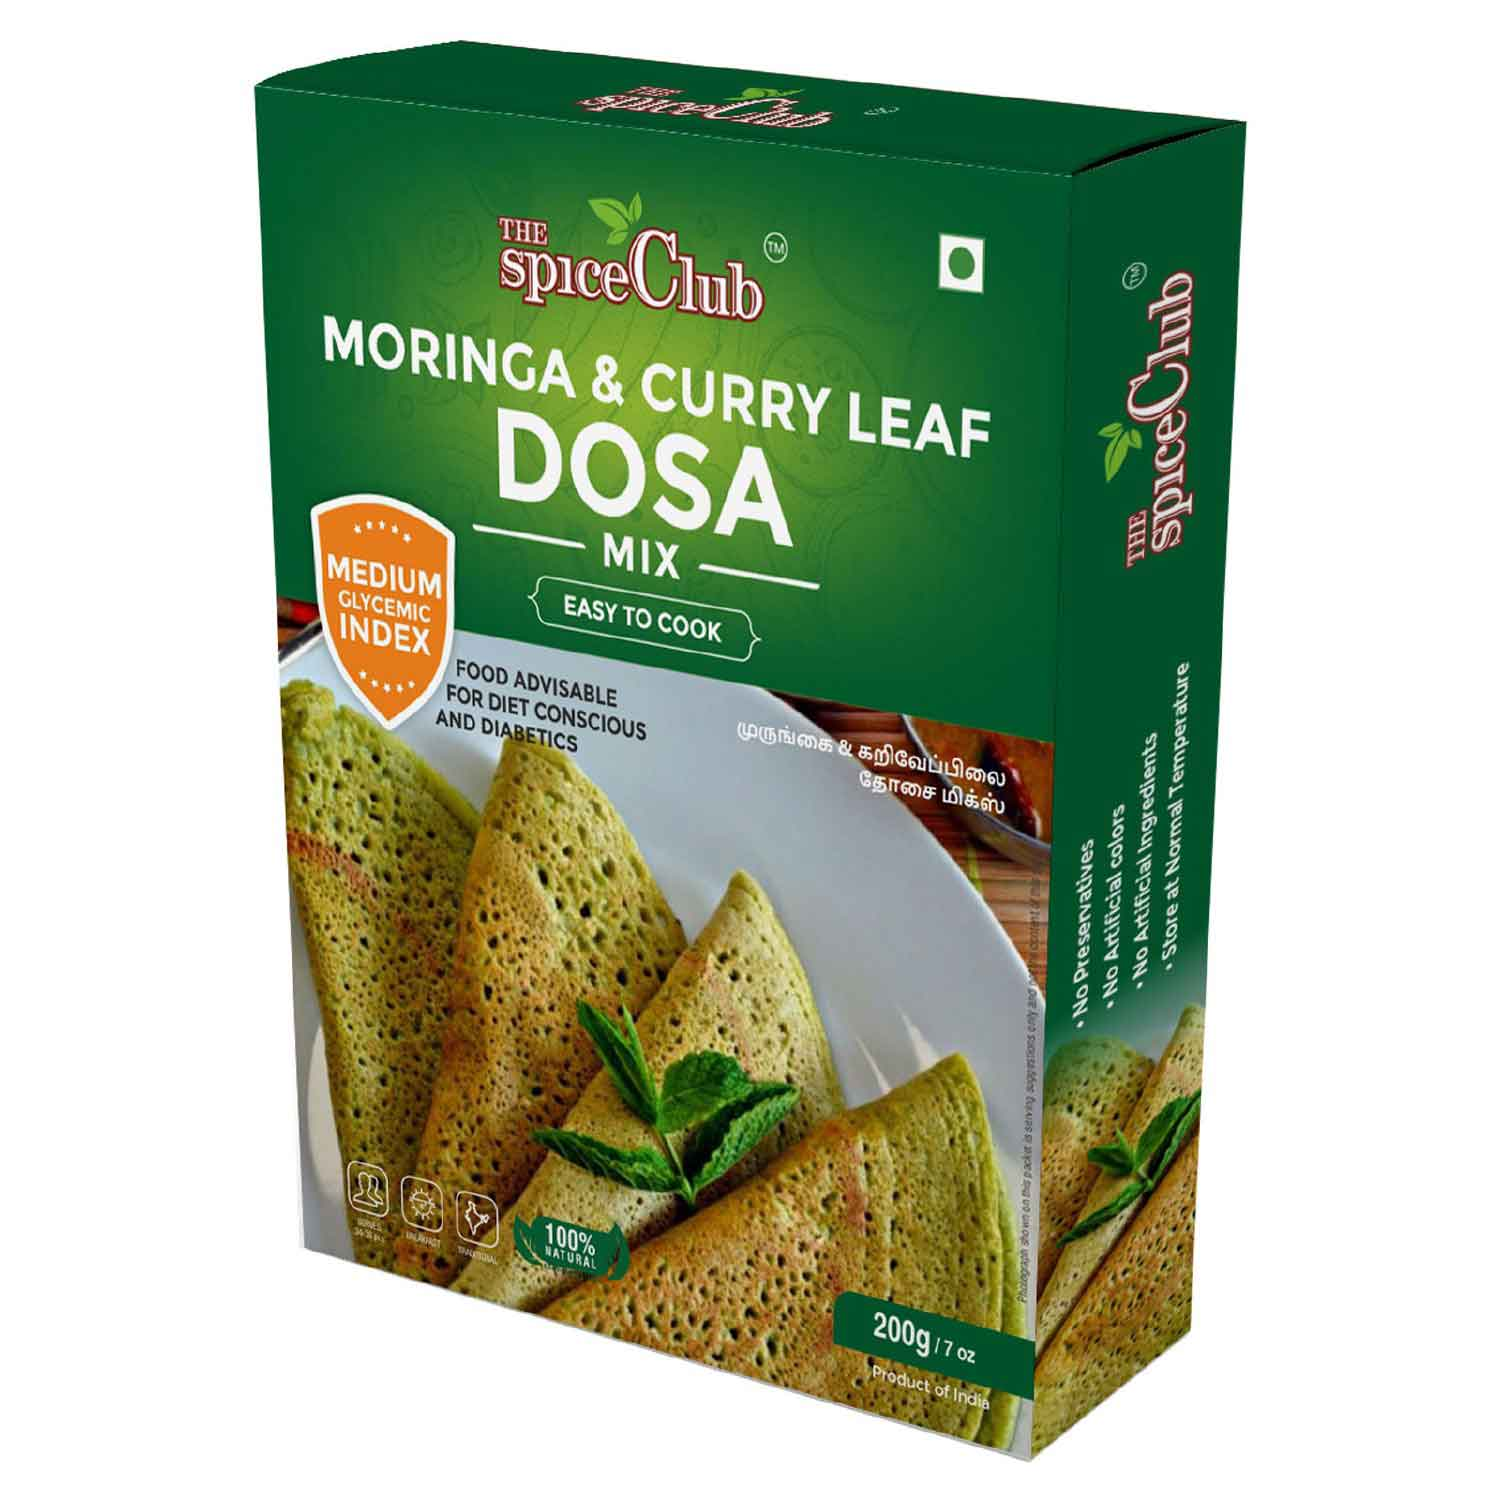 Moringa and Curry Leaf Dosa Mix – Medium GI, Easy To Cook